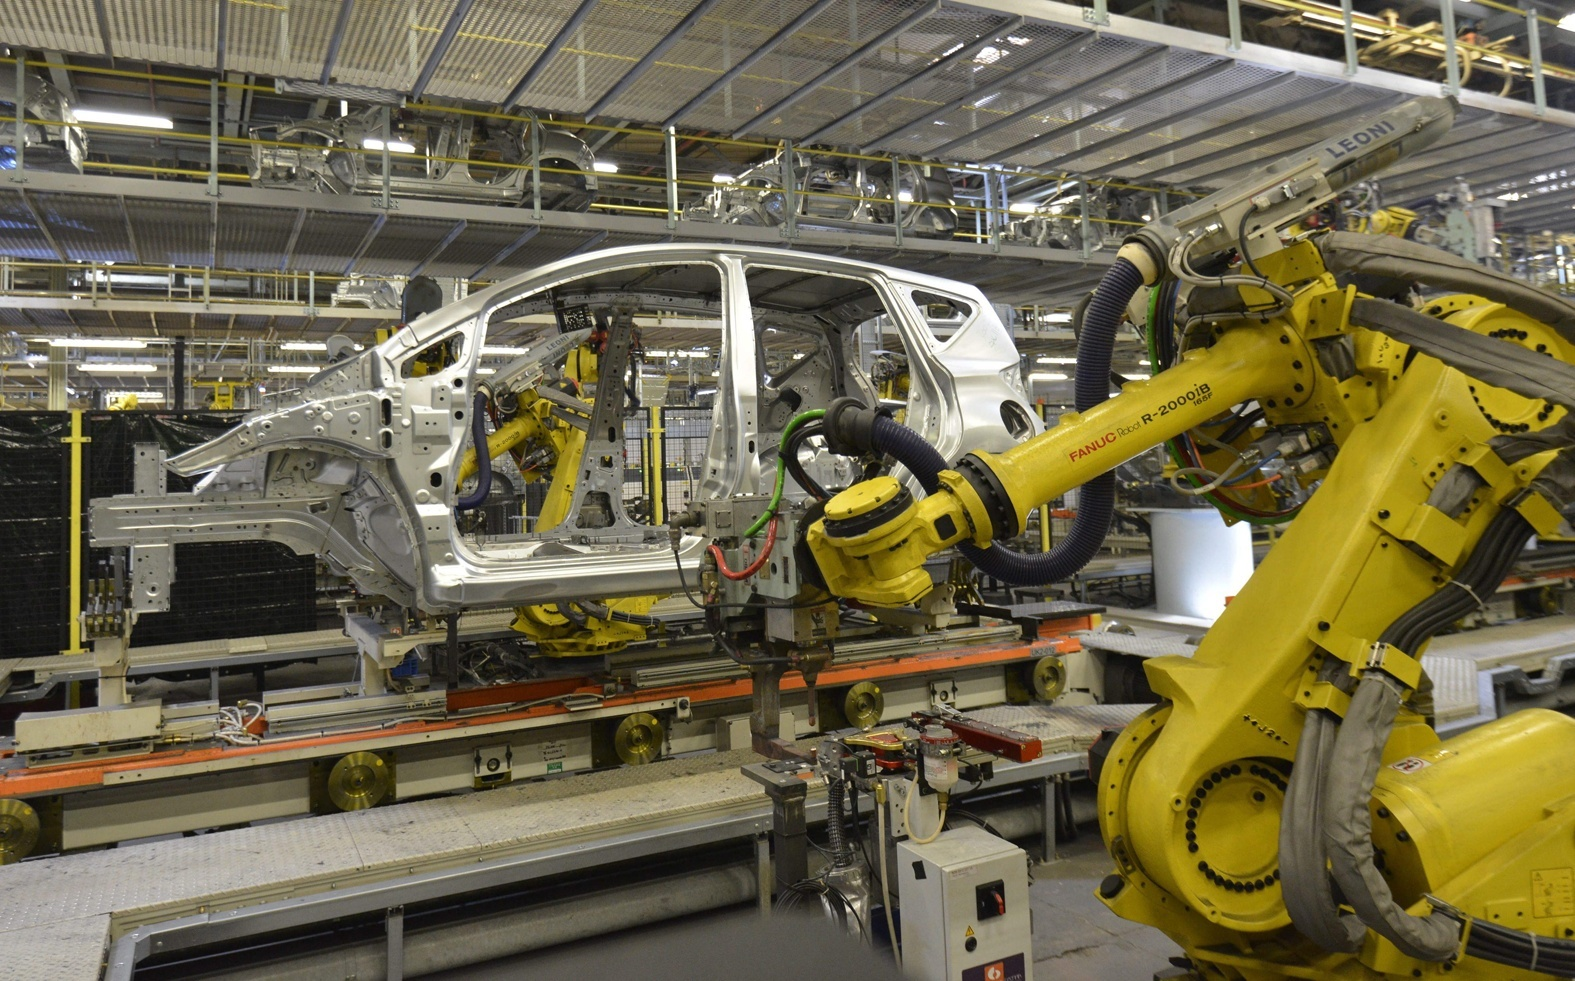 Nissan's Sunderland plant makes the Qashqai, Juke, Note and Leaf models